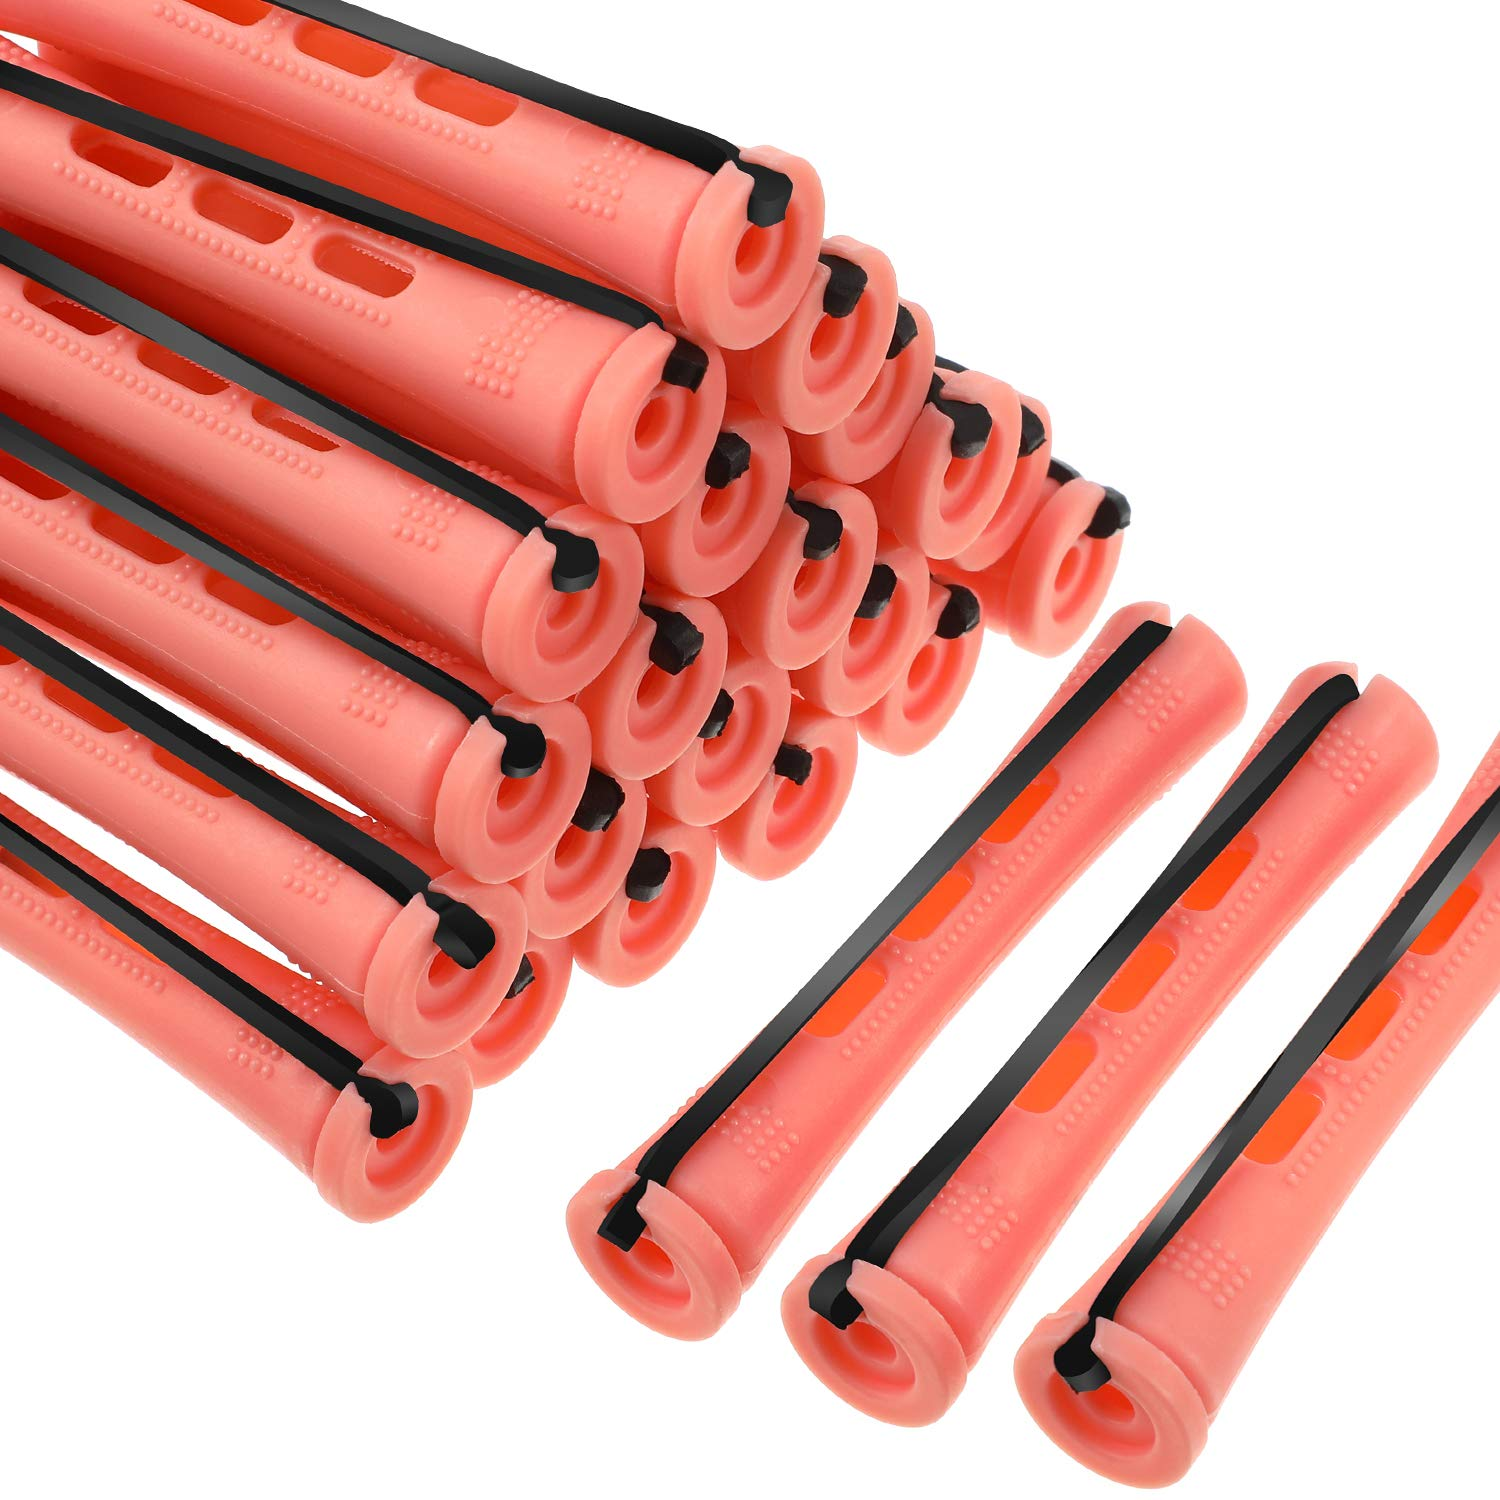 60 Pieces Hair Perm Rods Non-Slip Hair Rollers Plastic Cold Wave Rods Short Curlers Rod with Elastic Rubber Band Perming Rods Curlers Hairdressing Styling Tool (Orange, 0.5 Inch)